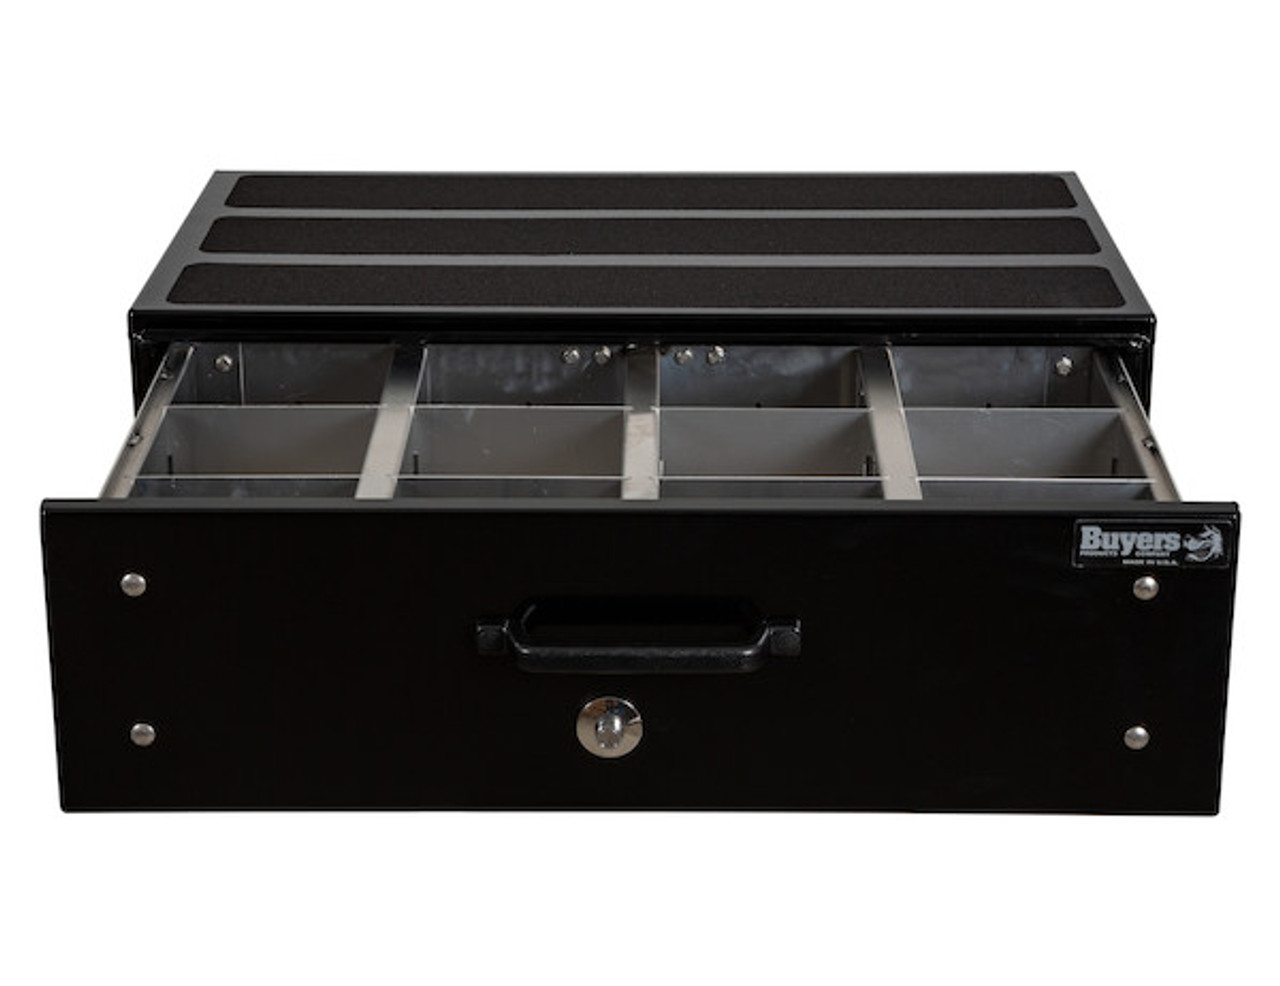 "1718320 BUYERS SMOOTH BLACK ALUMINUM SLIDE OUT TRUCK BED TOOLBOX 12""Hx24""Dx40""W PICTURE #"